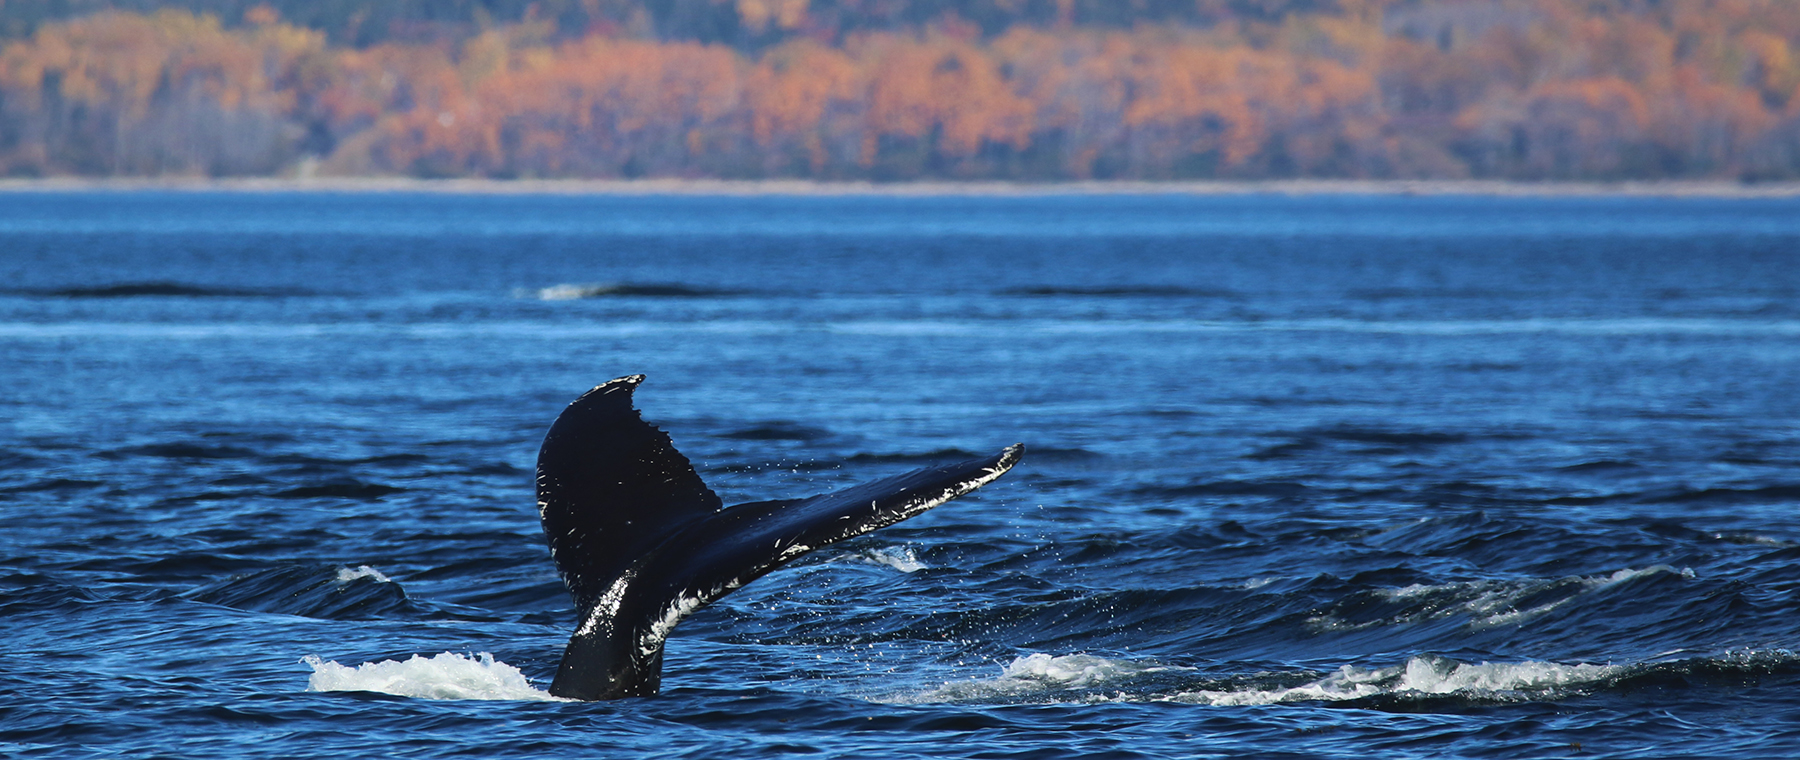 Whale escapades, alpaca tours, and more in Quebec's Charlevoix region